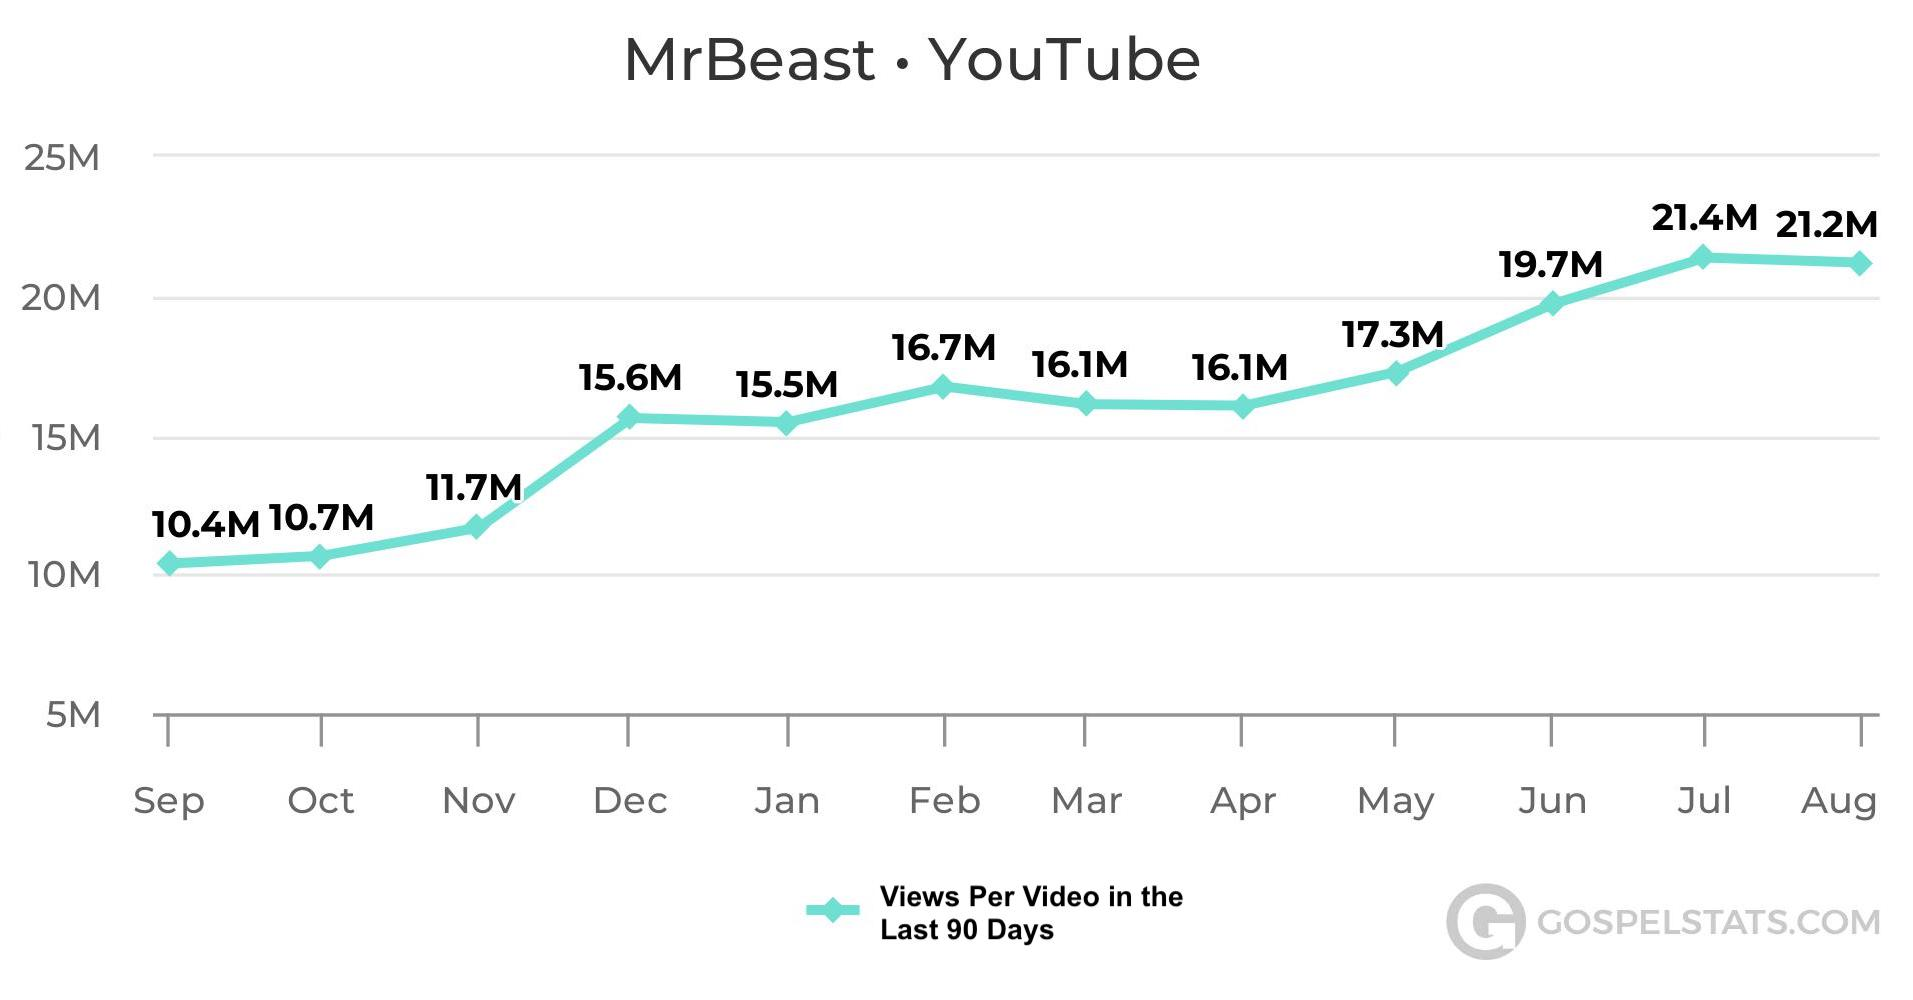 Every Single Video Mrbeast Has Made In The Past Year Got More Than 10 Million Views Tubefilter Learn how rich is he in this year and how he spends money? every single video mrbeast has made in